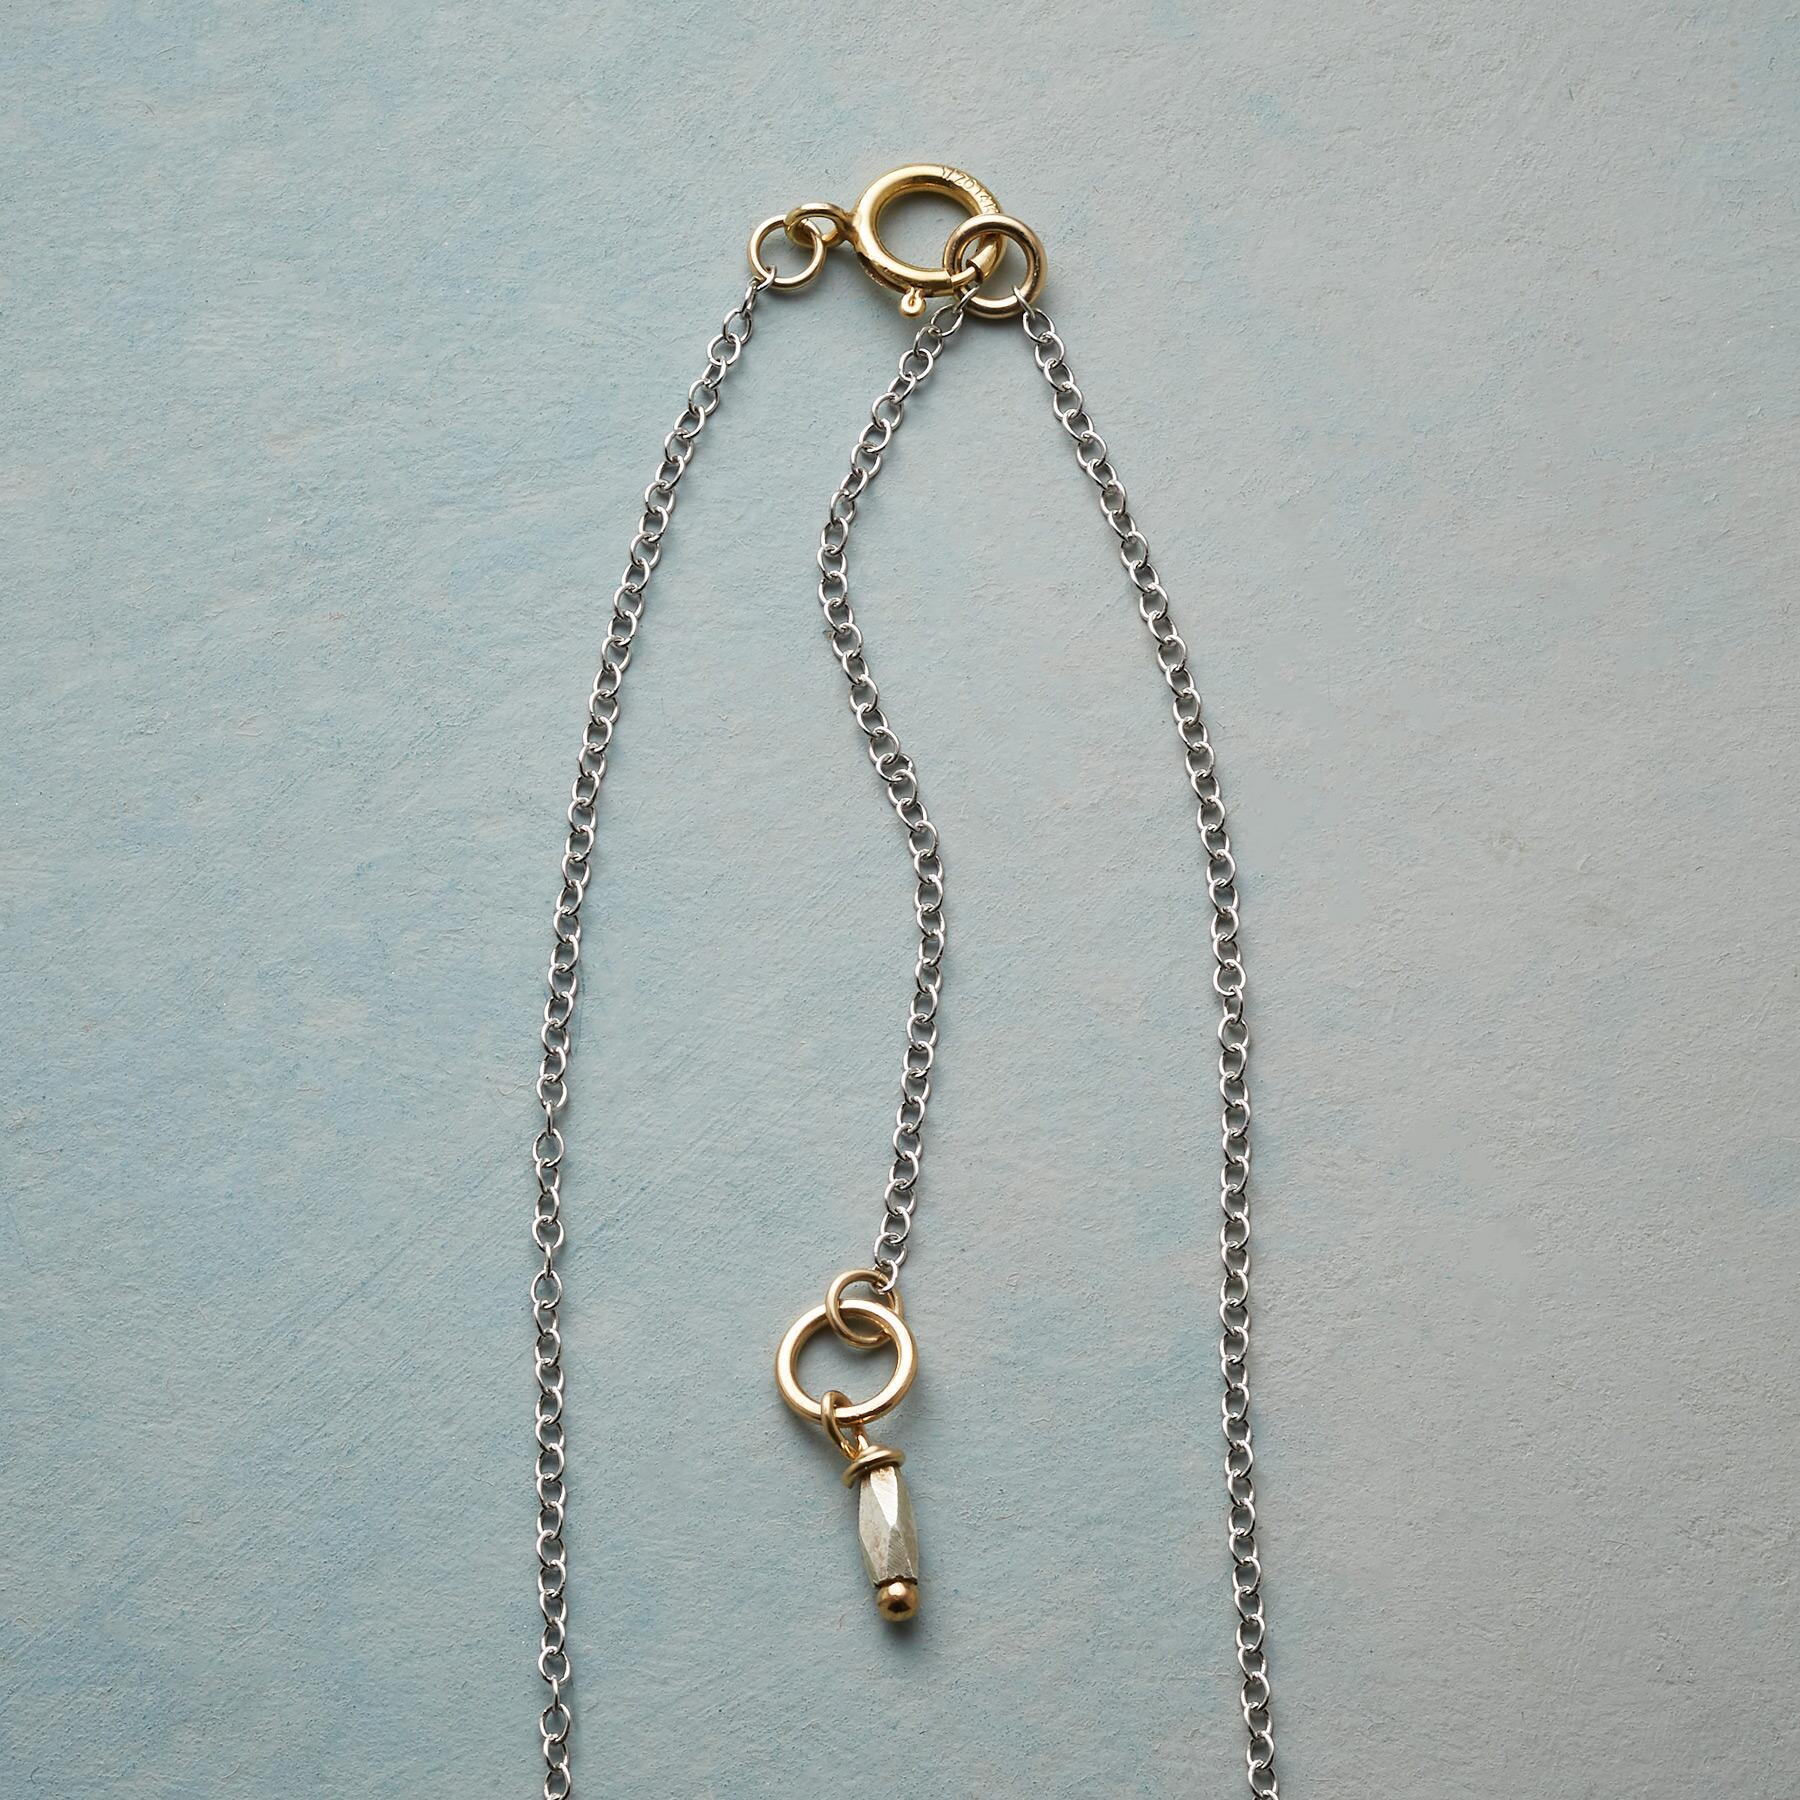 BIRTHSTONE TILE NECKLACE: View 3